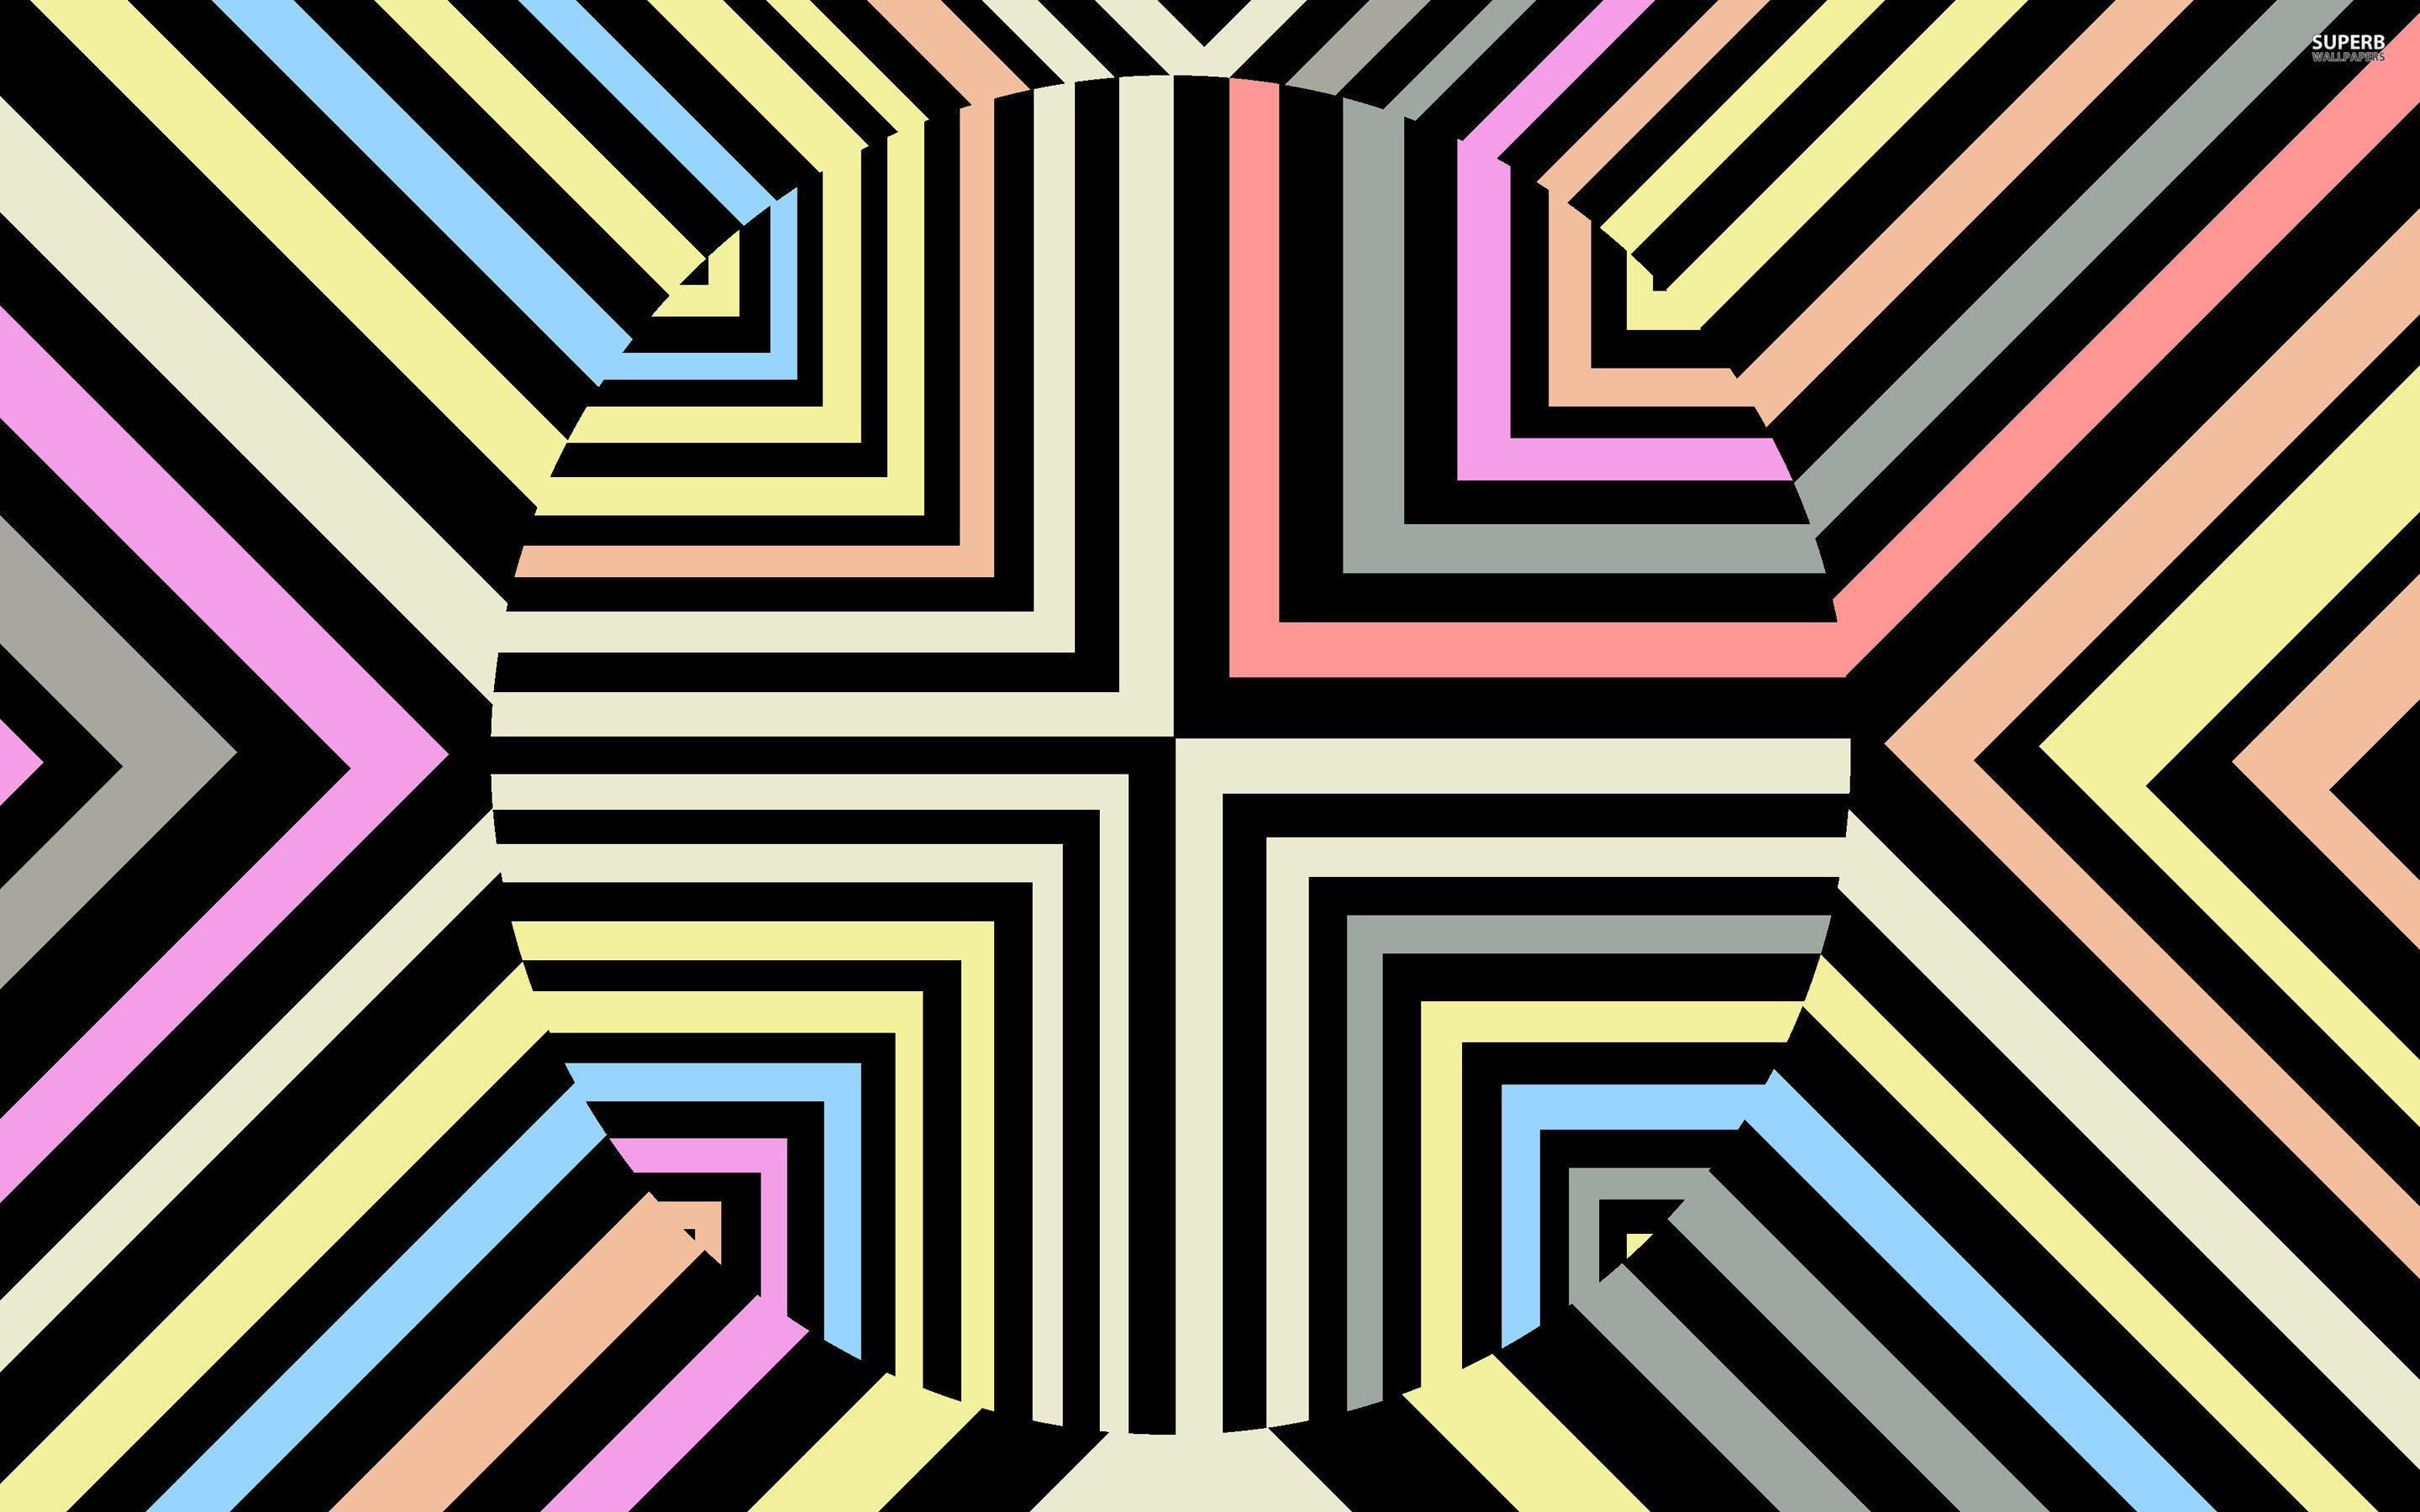 Res: 2880x1800, Optical Illusion Wallpaper Iphone Awesome Free Neon Lights 6